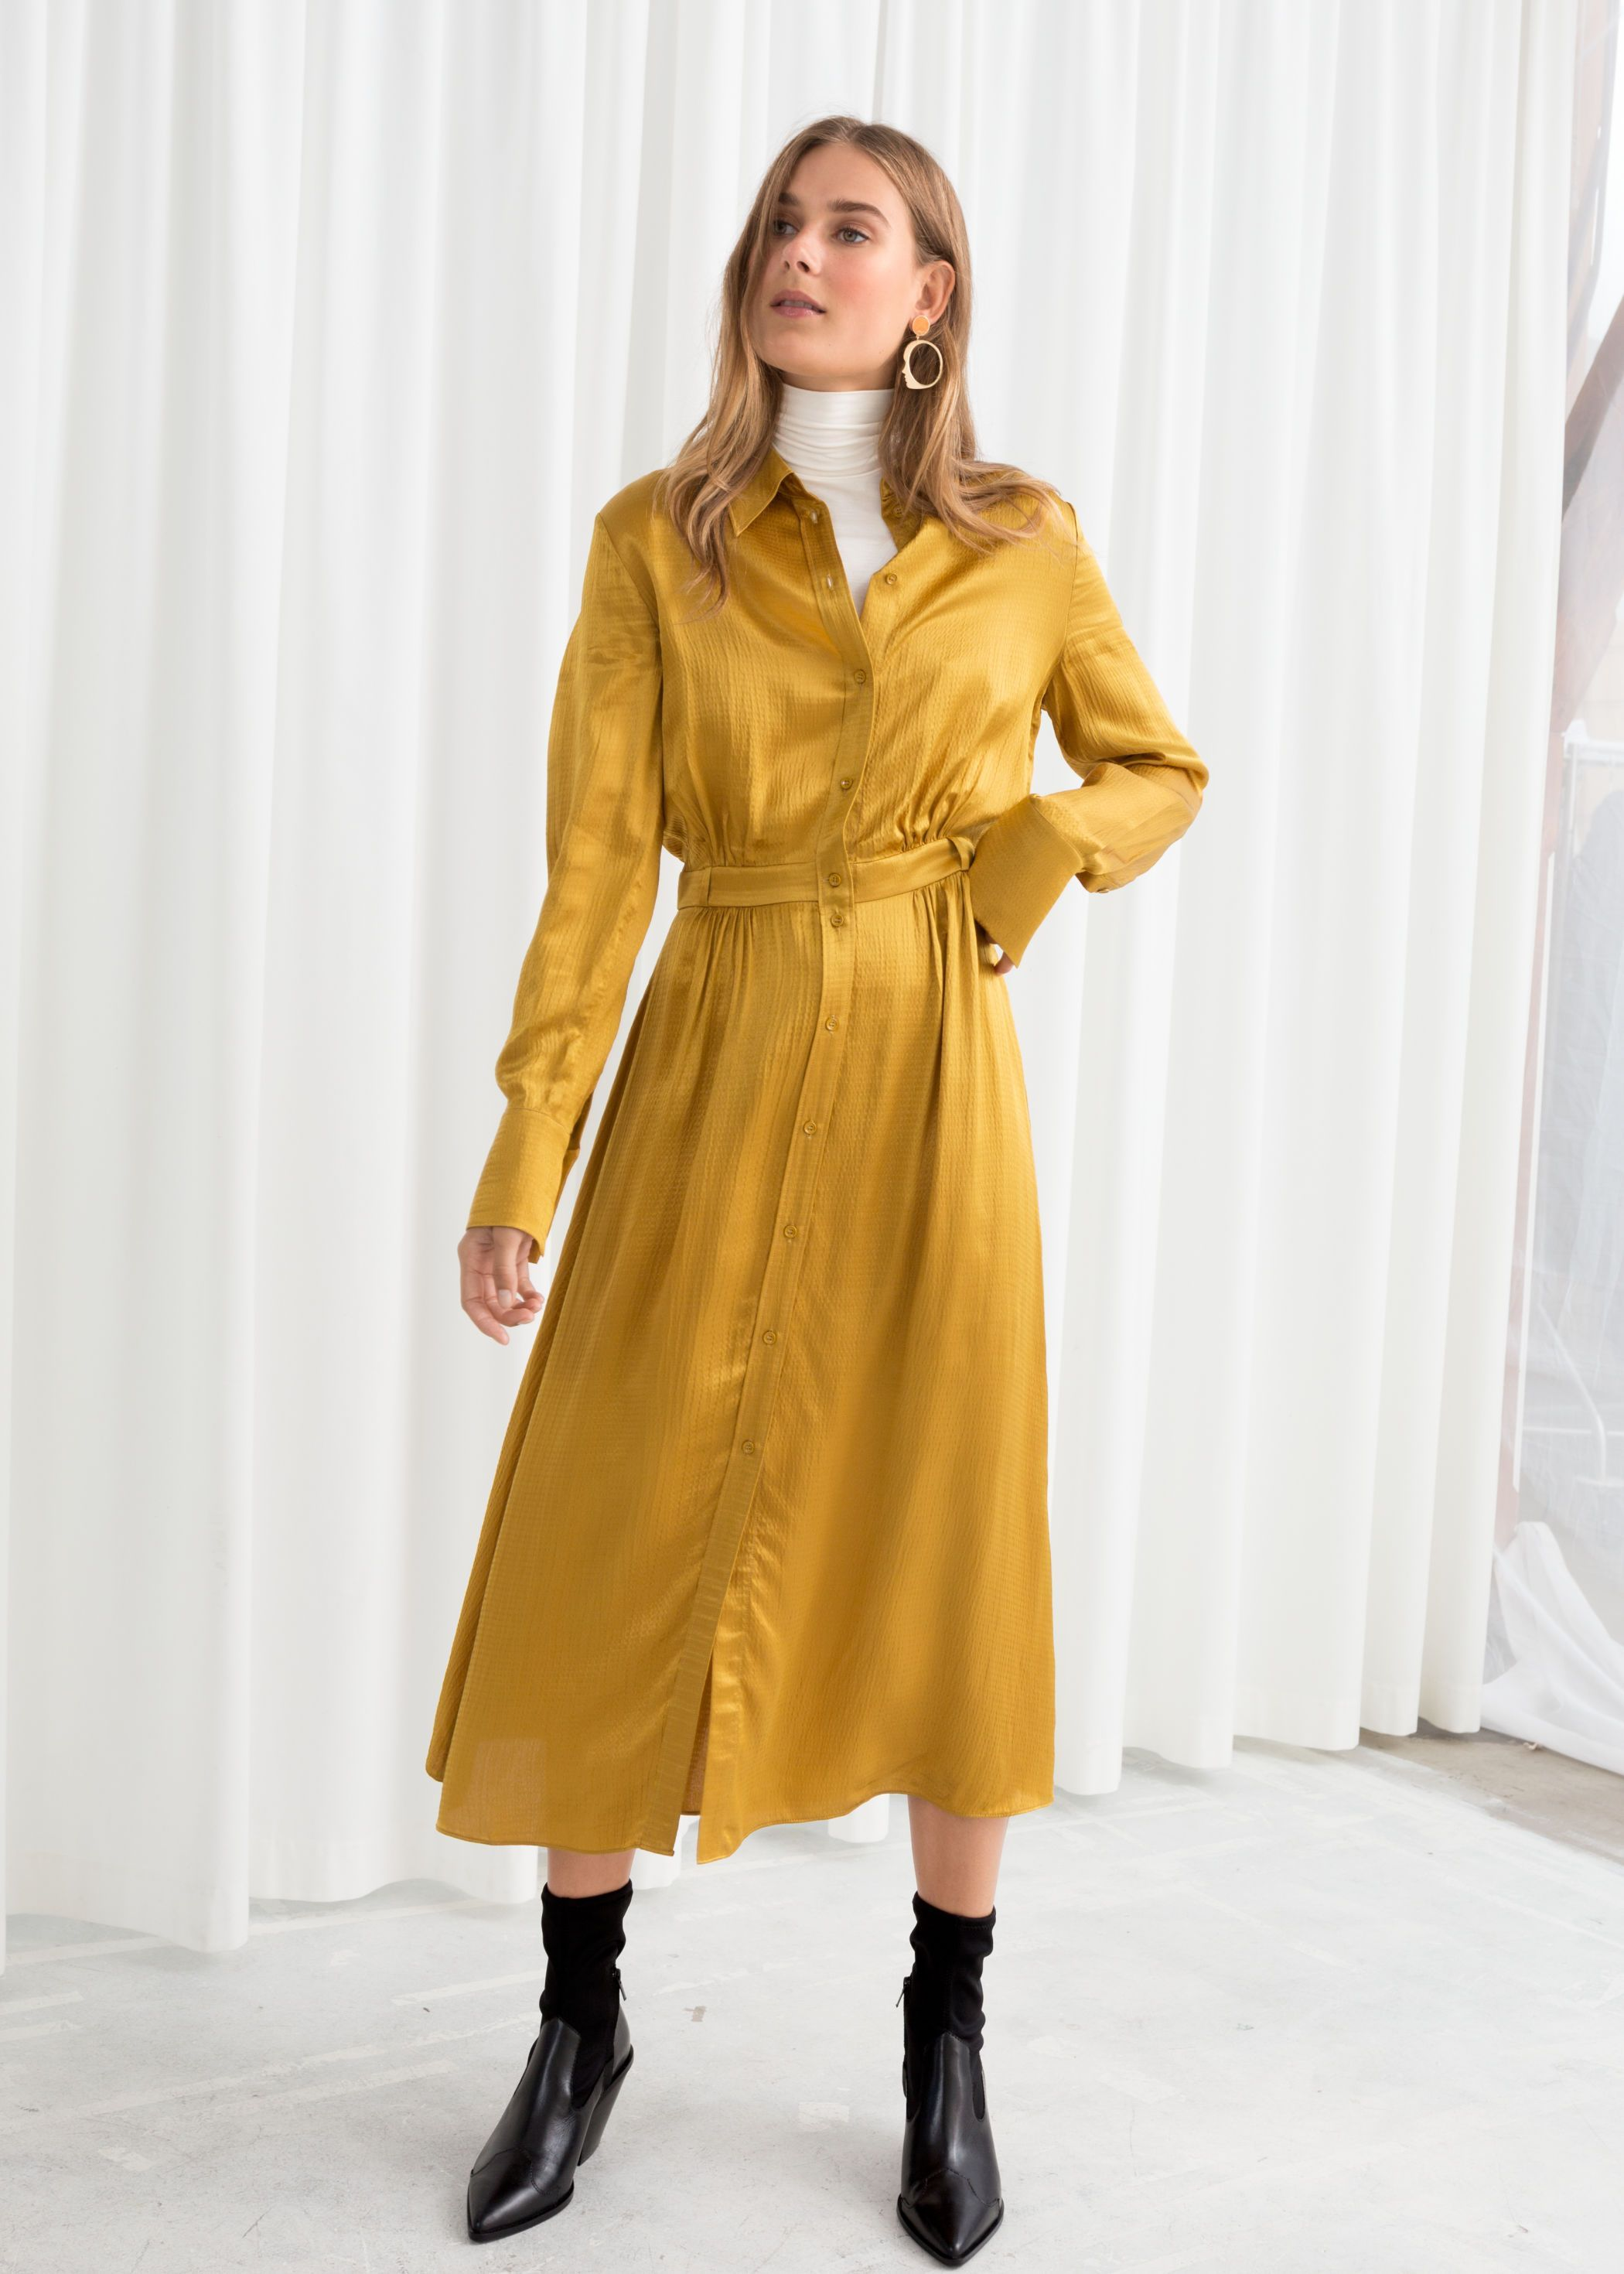 This Is What Fashion Girls Wear To Baby Showers Satin Midi Dress Midi Dress Cheap Spring Dresses [ 2940 x 2100 Pixel ]